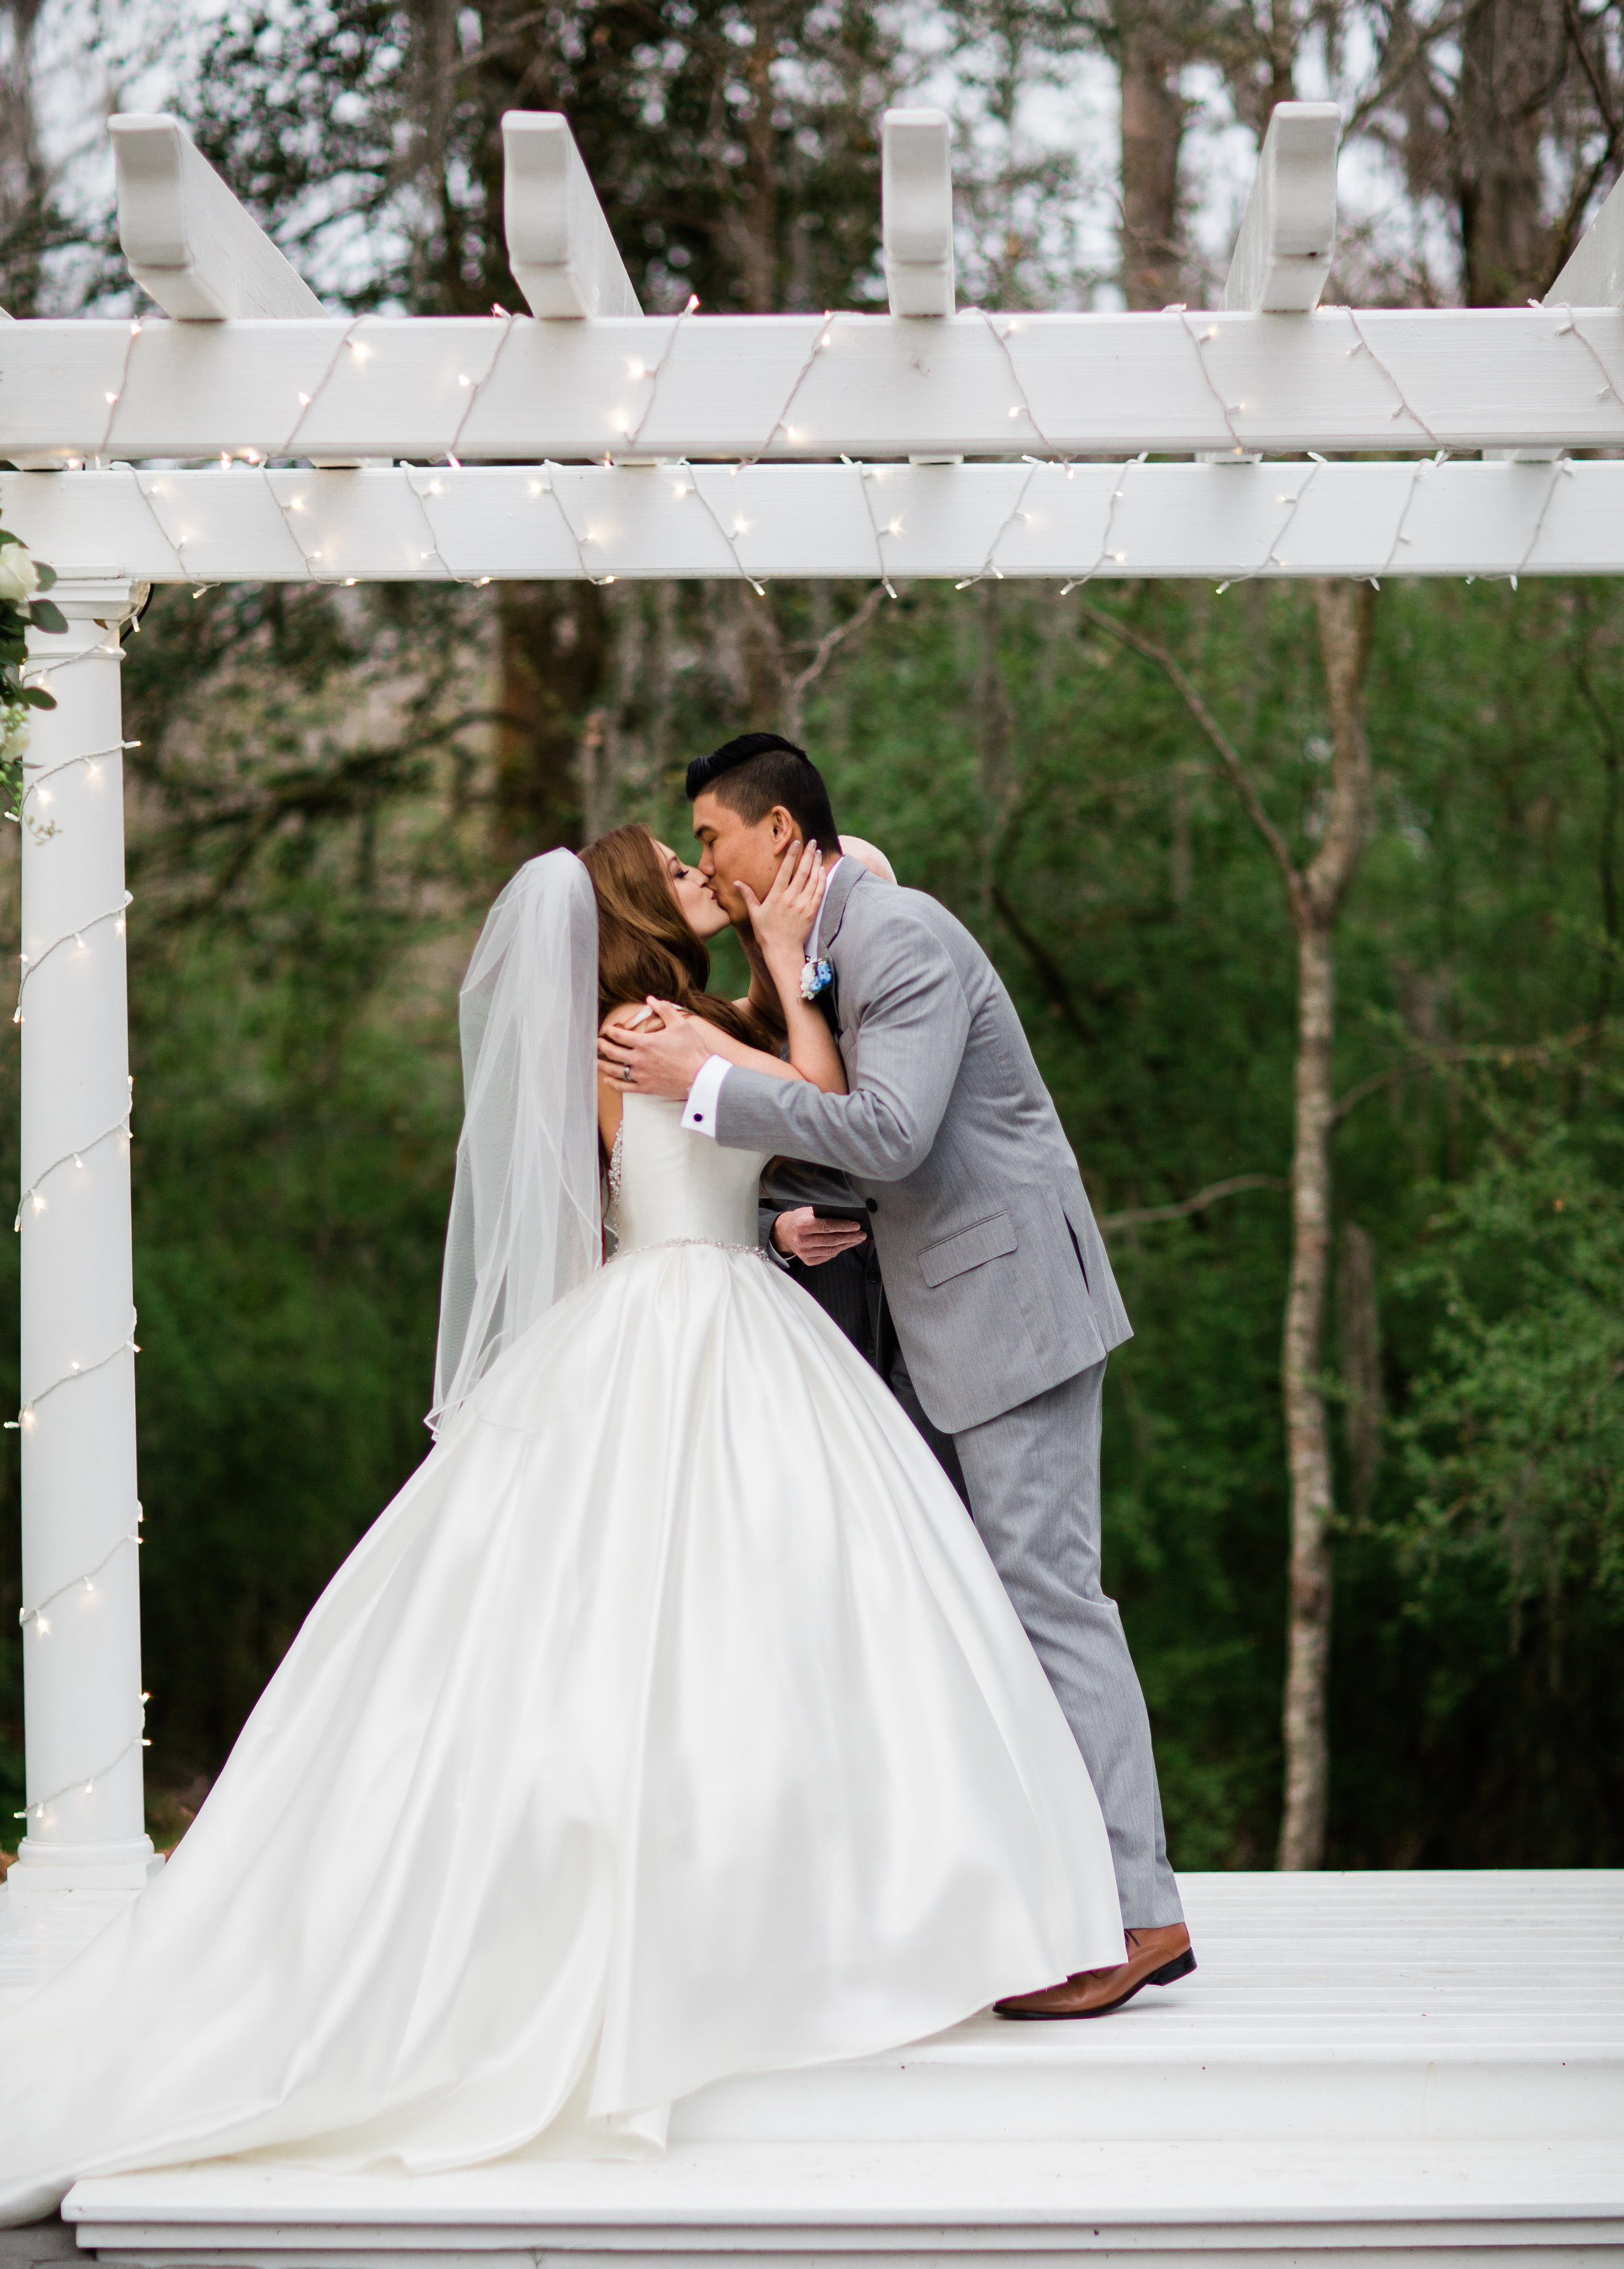 savannah-bridal-shop-i-and-b-bride-dallas-vitor-lindo-photography-verity-gown-by-maggie-sottero-savannah-wedding-gown-savannah-wedding-dress-mackey-house-wedding-3.jpg